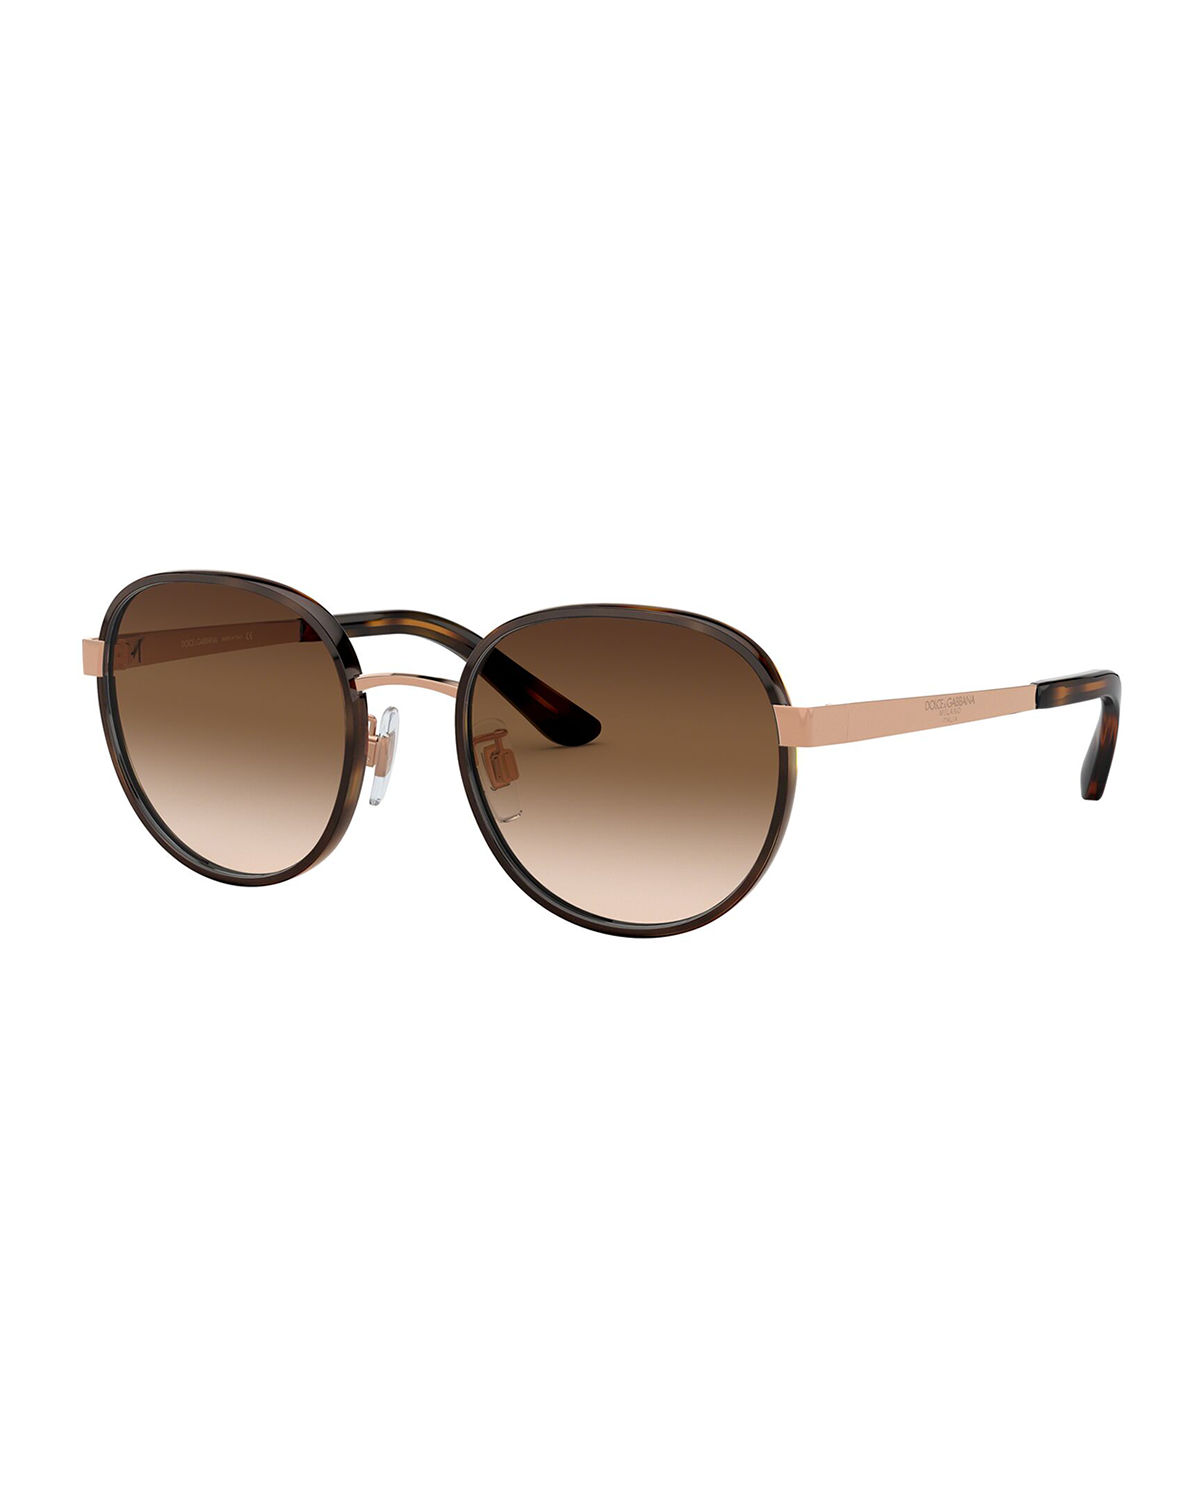 Dolce & Gabbana Sunglasses ROUND METAL SUNGLASSES